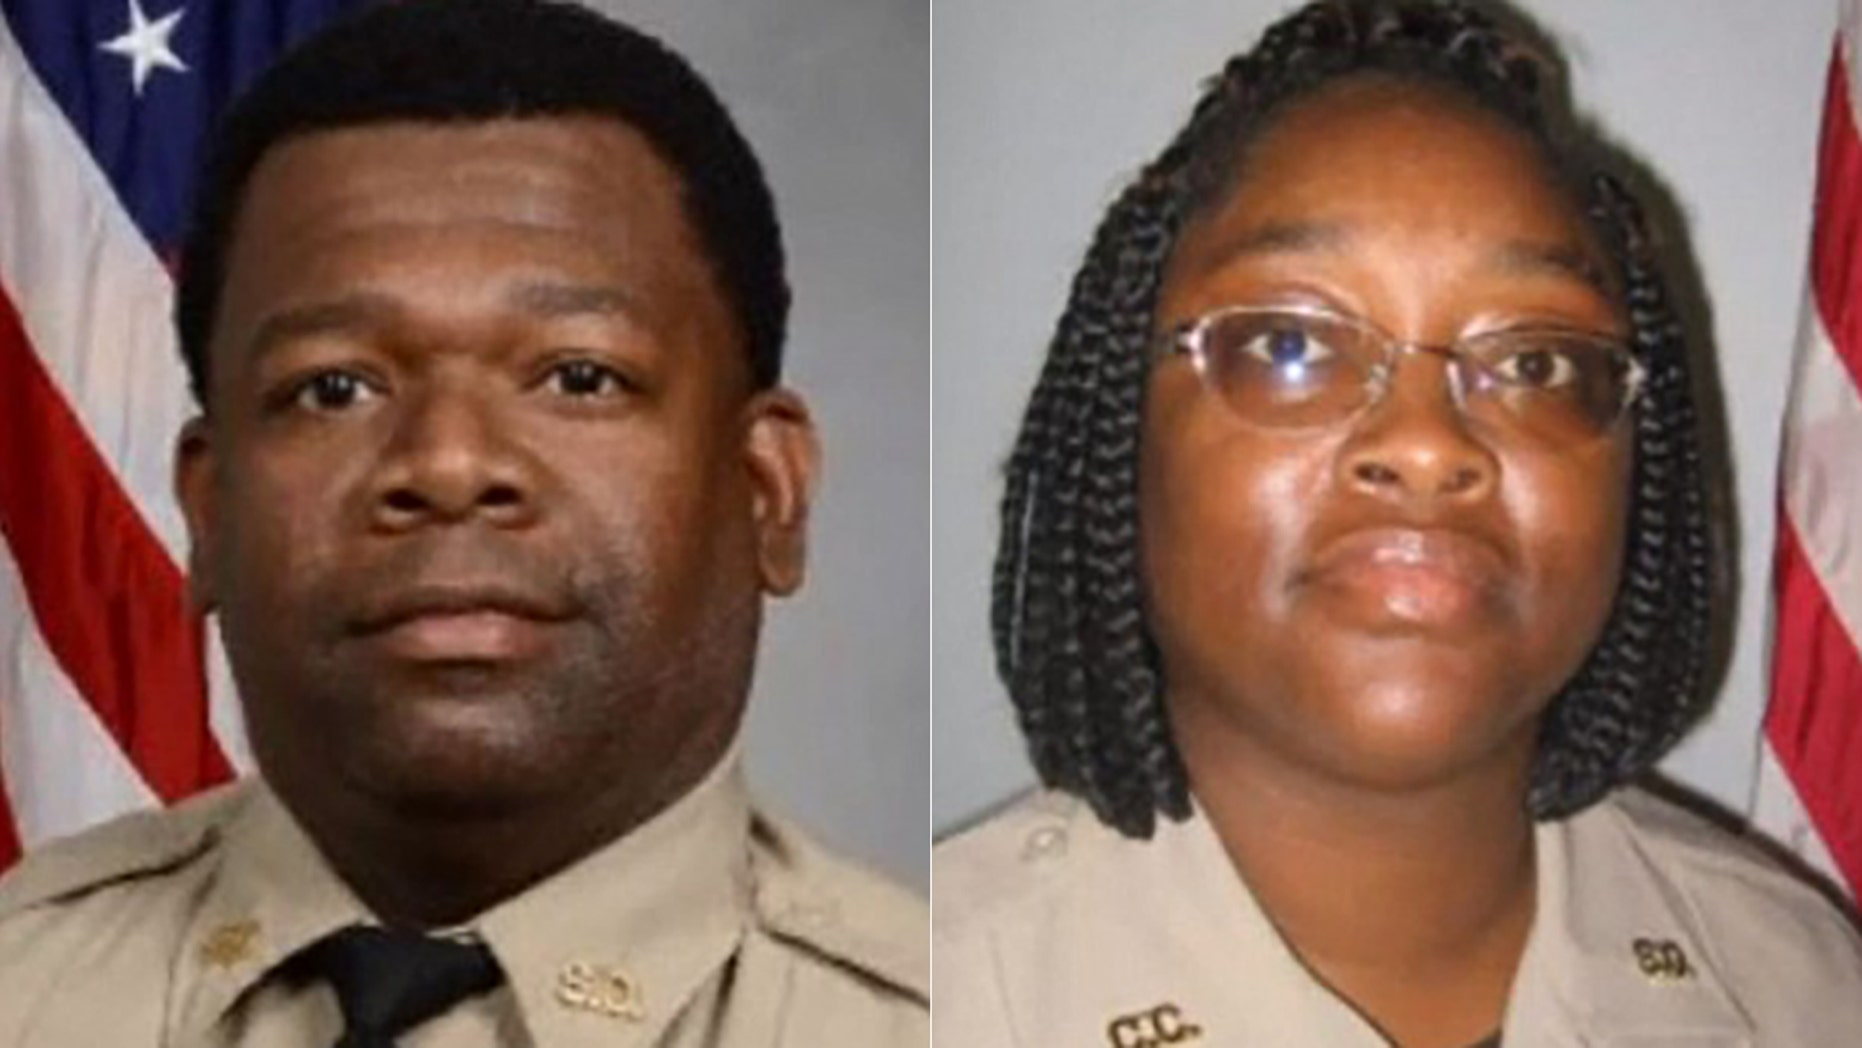 Martelle and Shawana Davis were arrested in Mexico, officials said.